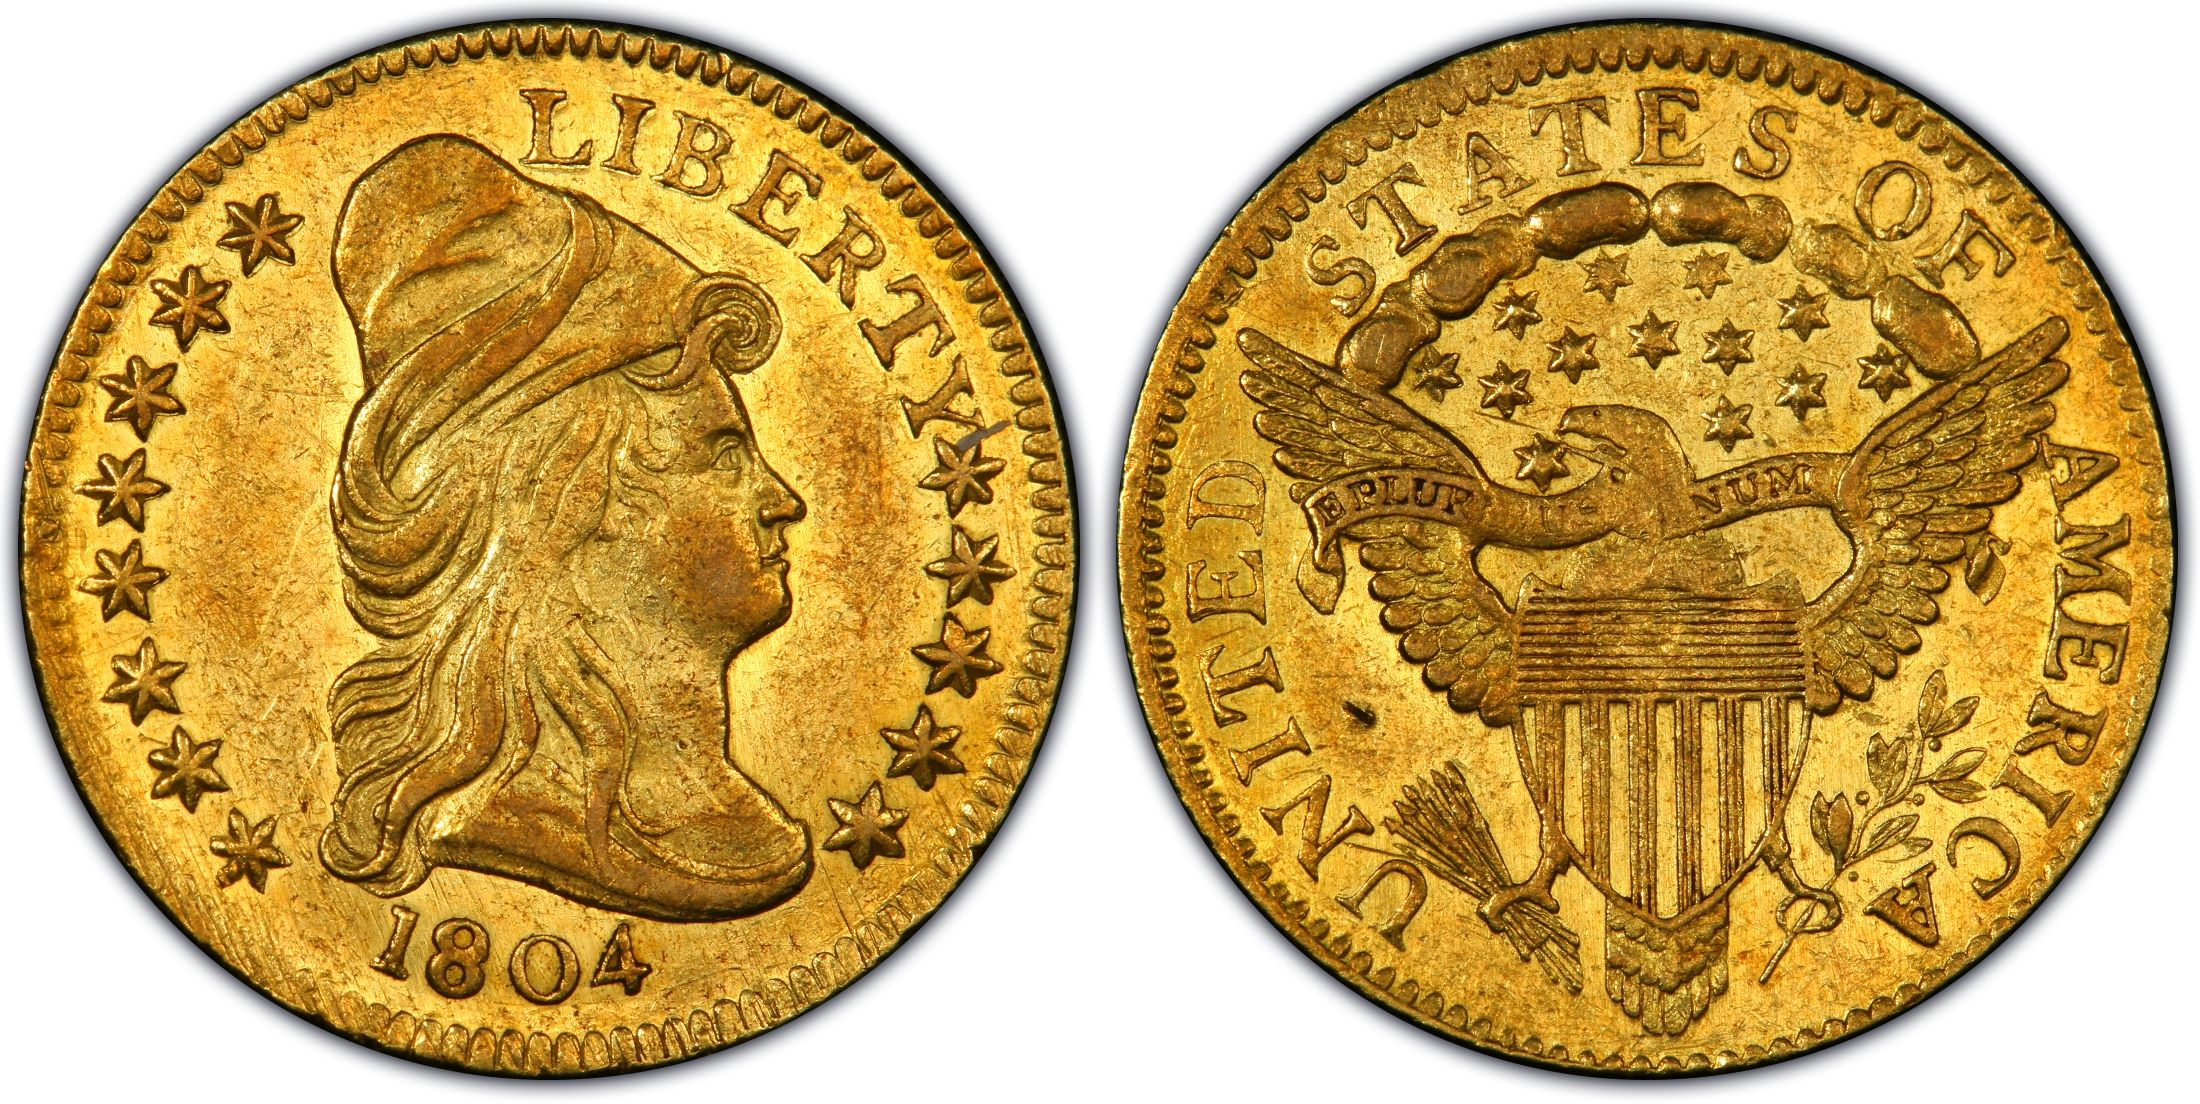 1804 250 13 stars reverse regular strike pcgs coinfacts pcgs au58 publicscrutiny Image collections